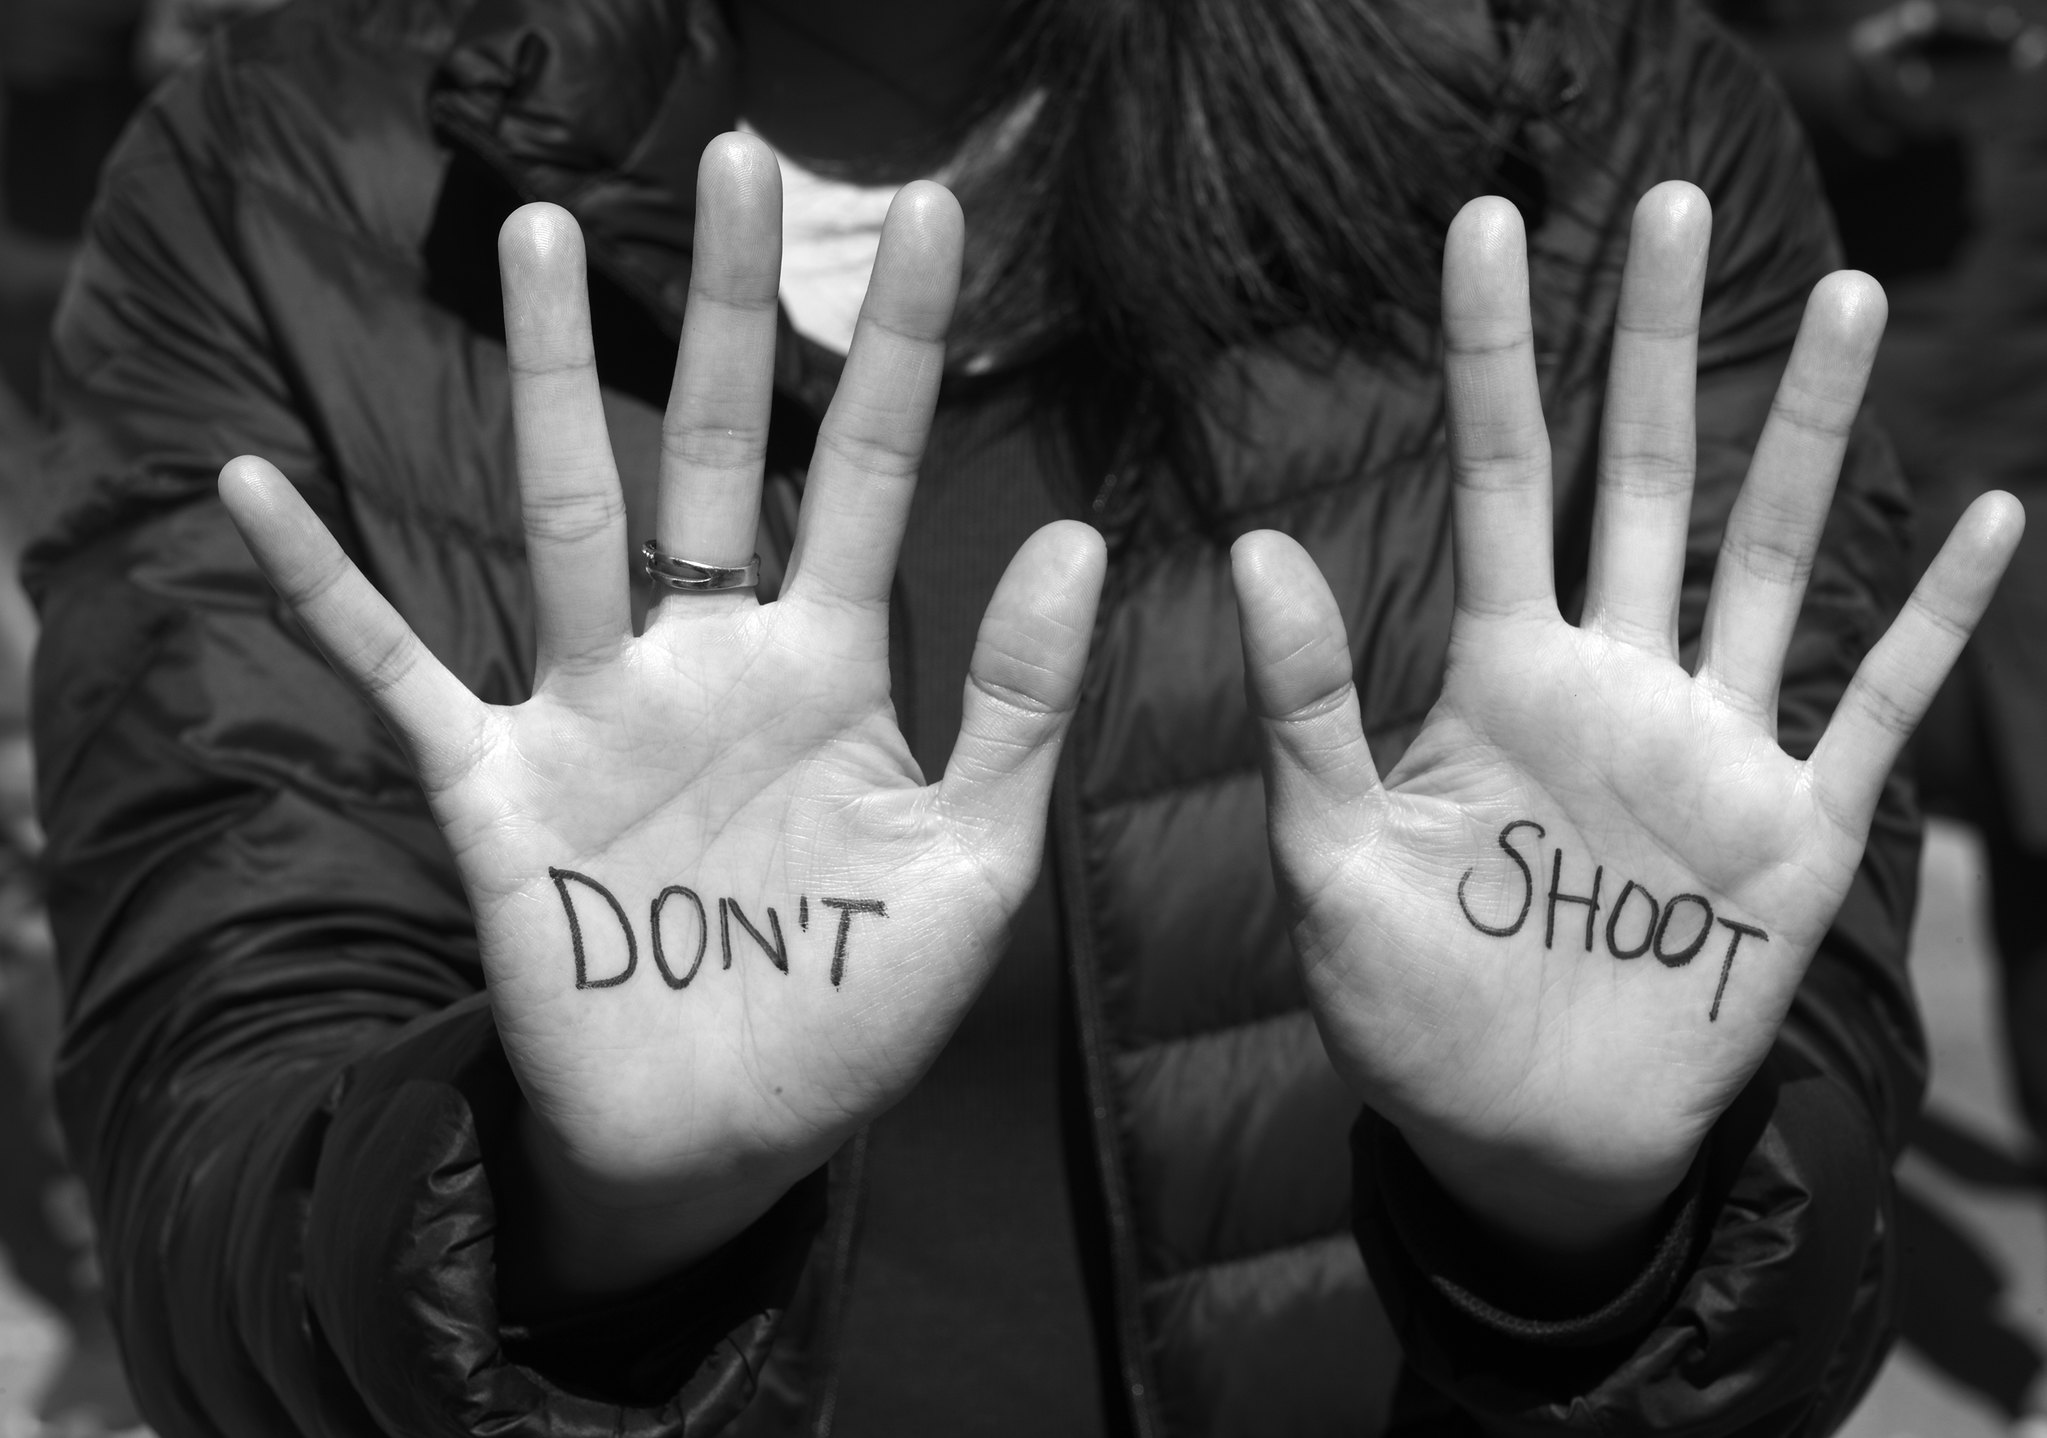 'Don't shoot'